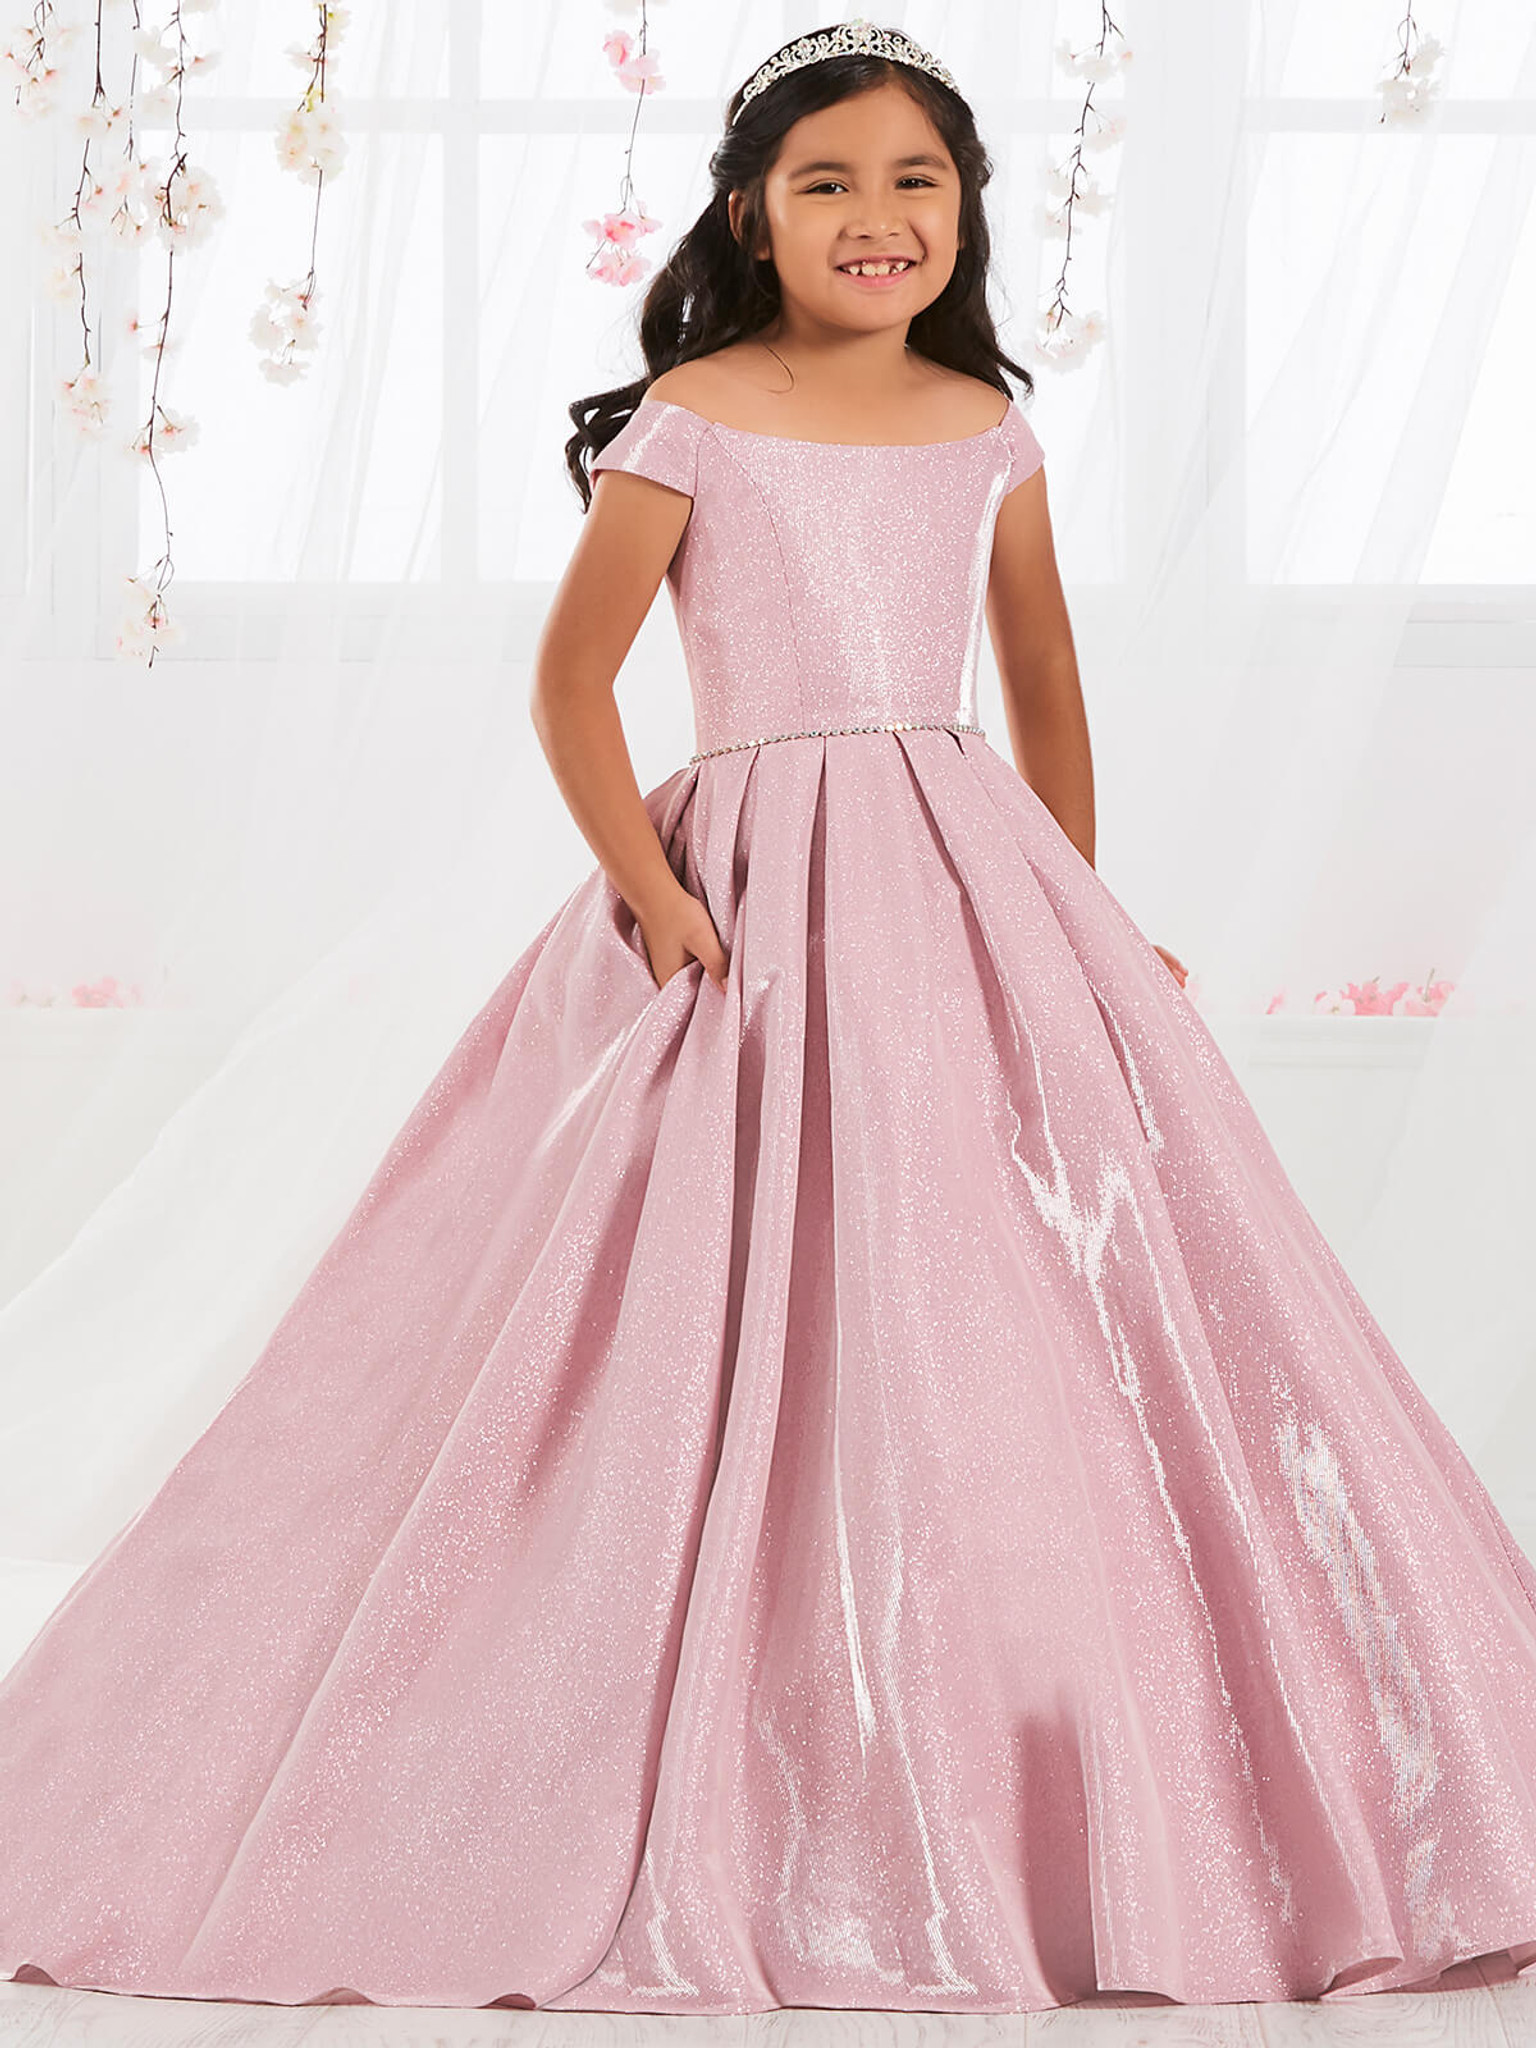 Shimmering Girls Pageant Dress Tiffany Princess 13556